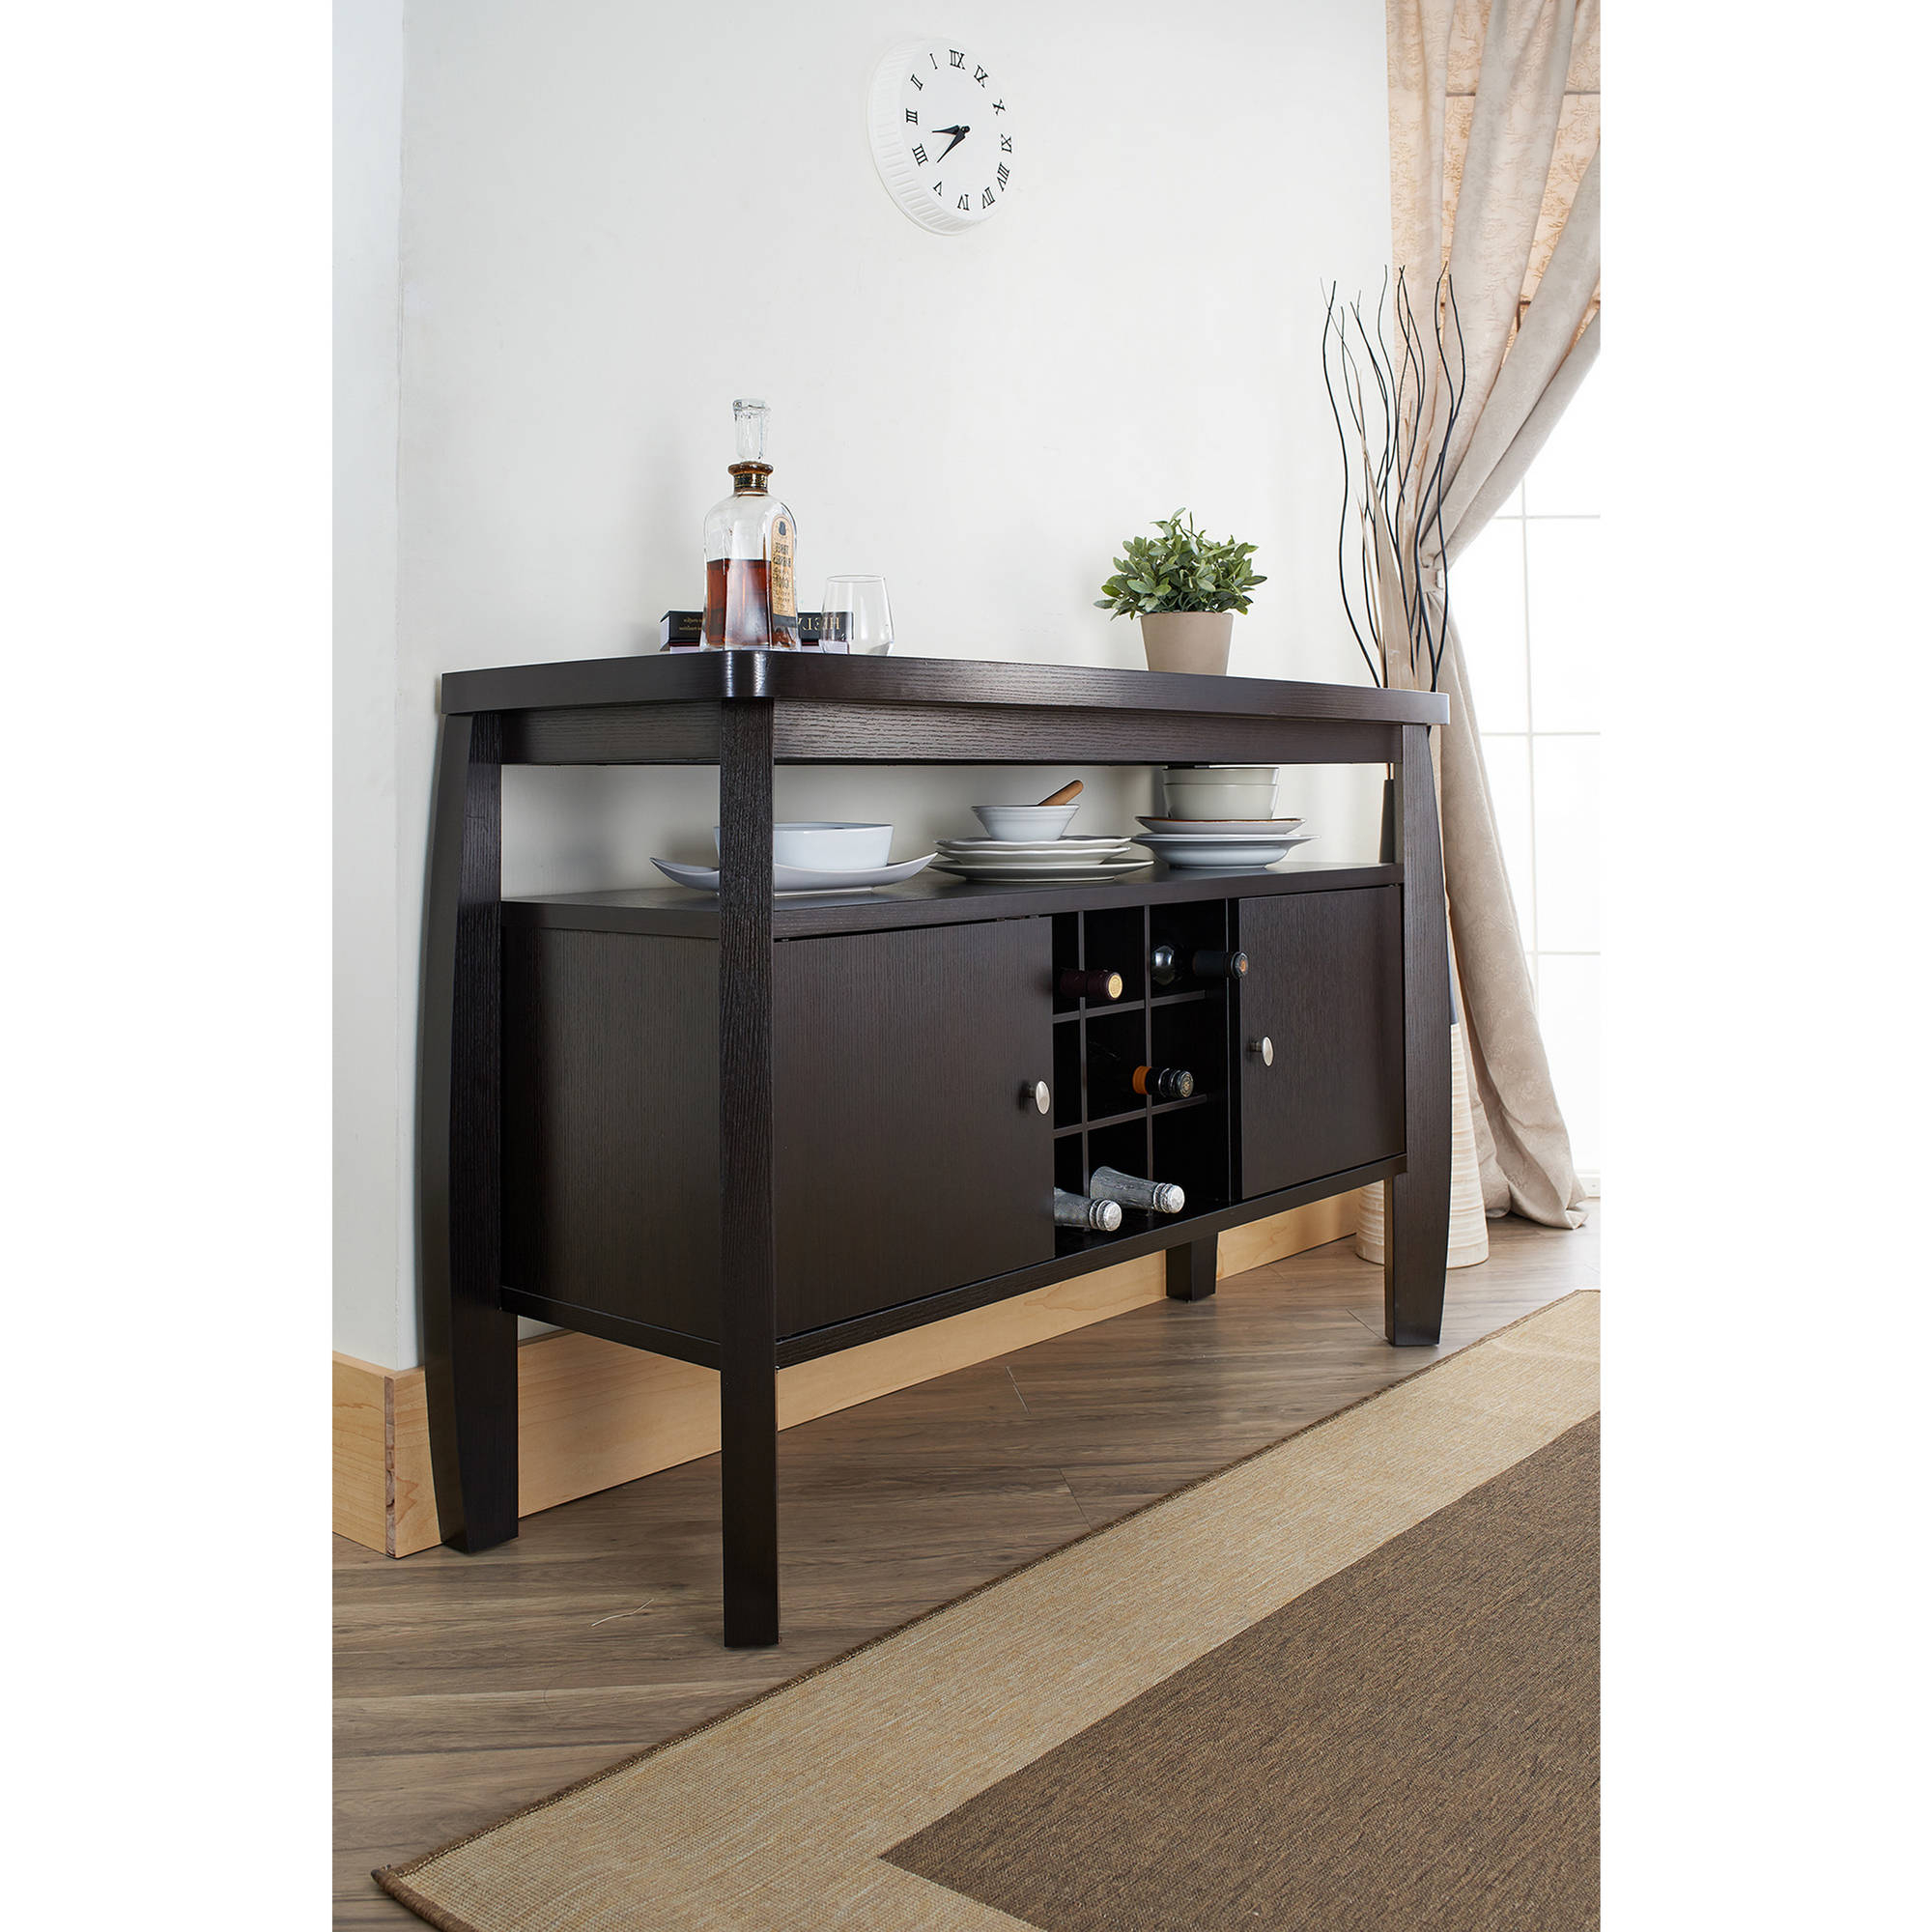 Furniture Of America Vera Contemporary Multi Storage Buffet Table, Espresso Intended For Contemporary Multi Storage Dining Buffets (View 18 of 20)